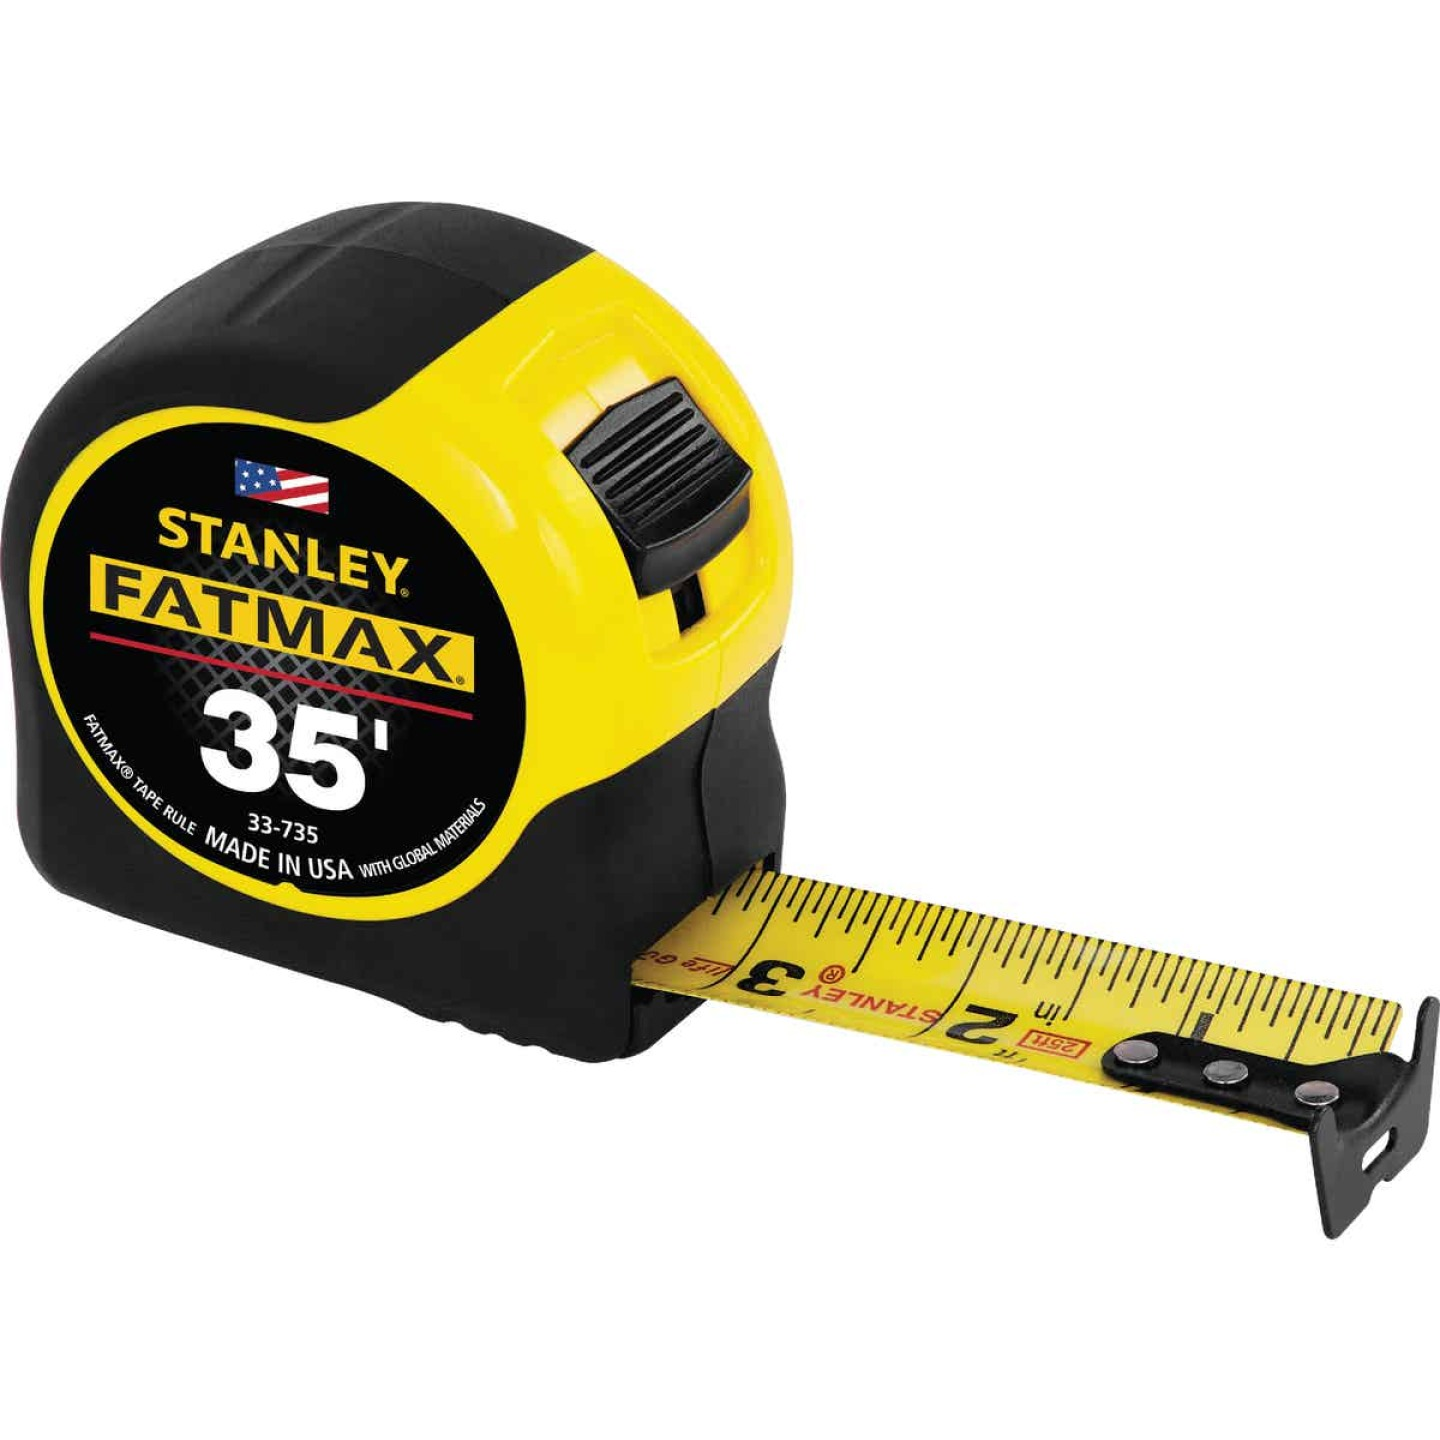 Stanley FatMax 35 Ft. Classic Tape Measure with 11 Ft. Standout Image 1